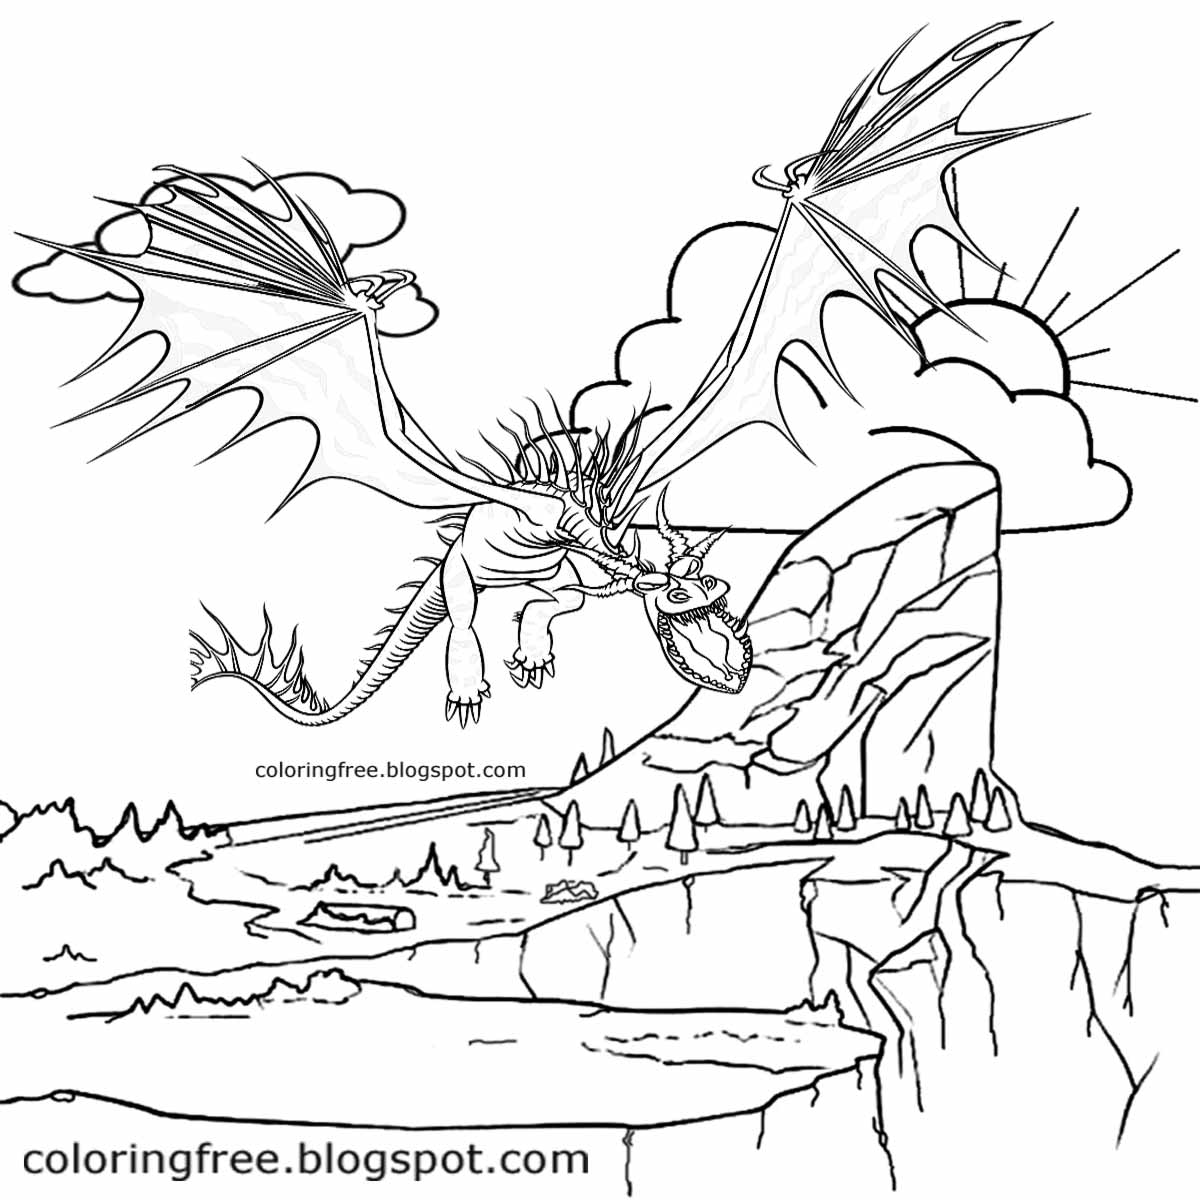 Flying Dinosaurs Drawing at GetDrawings.com | Free for personal use ...